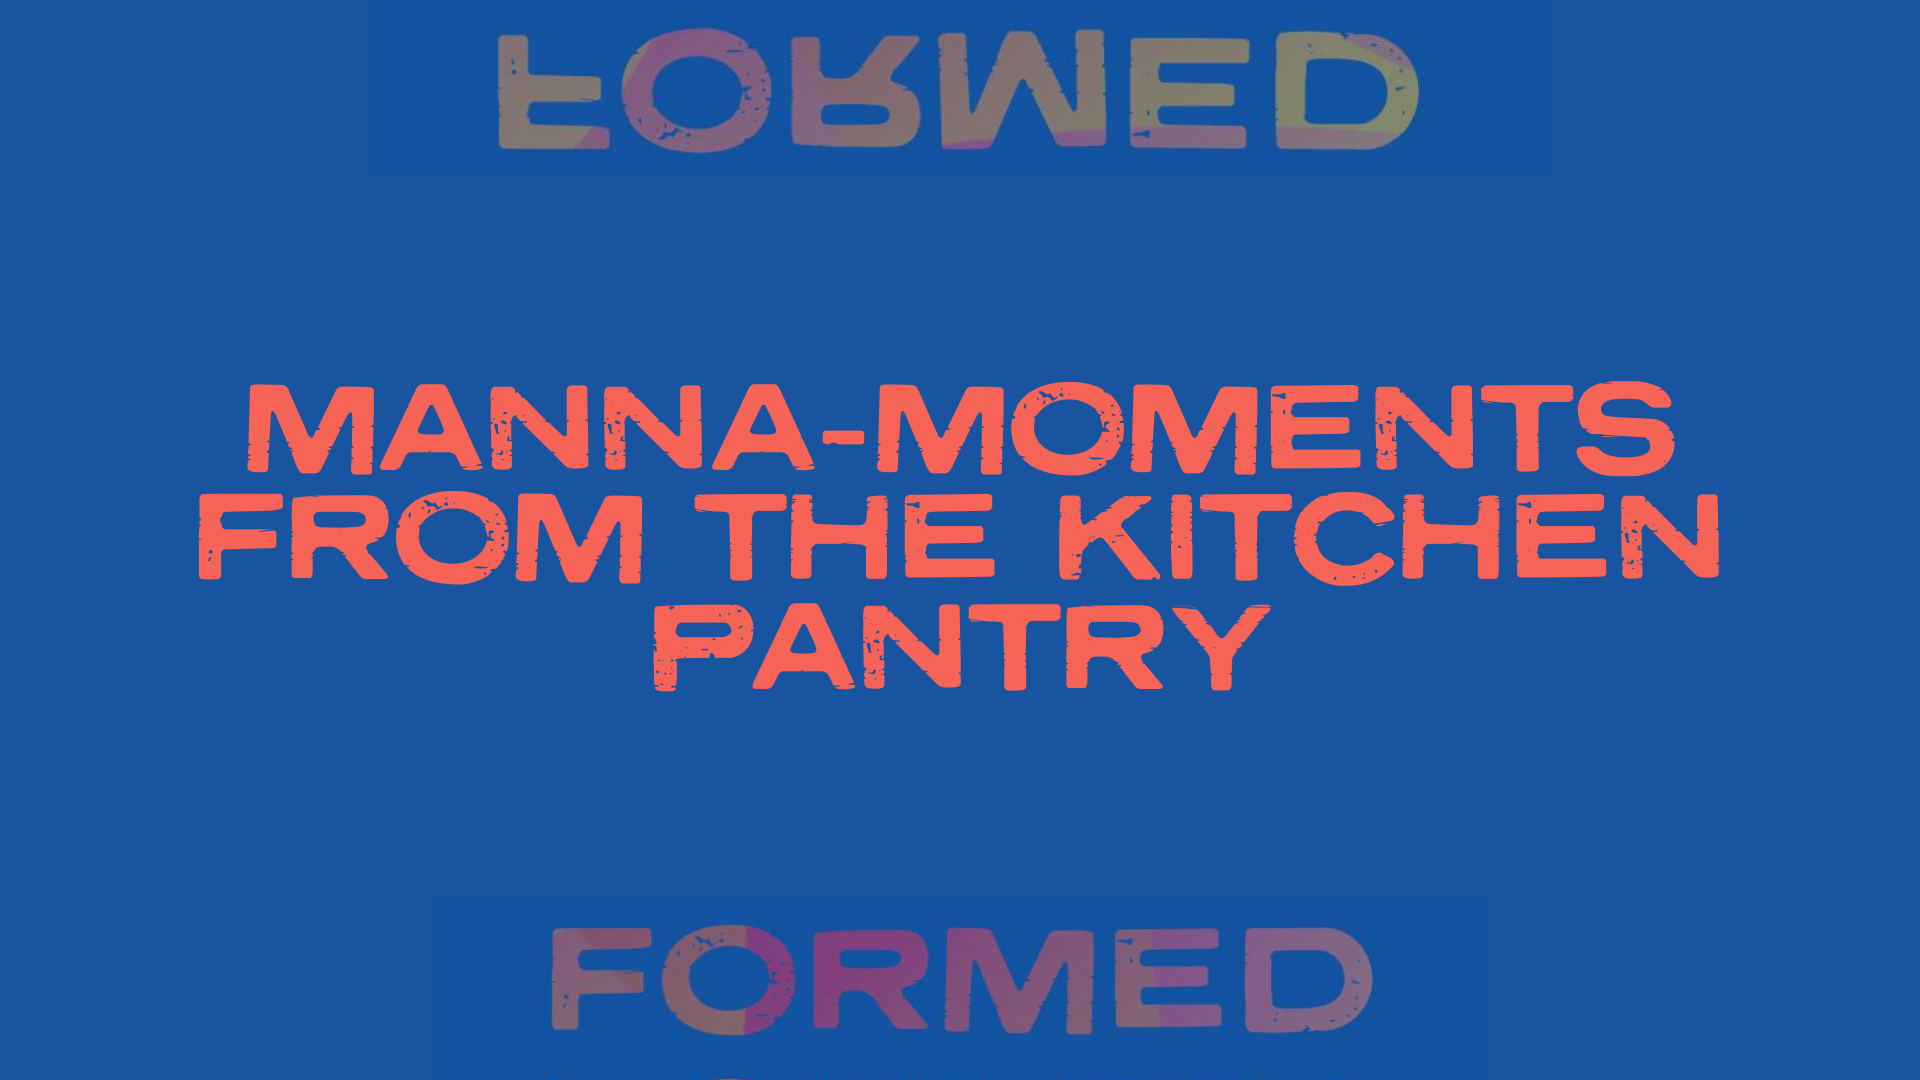 Manna-Moments from the Kitchen Pantry